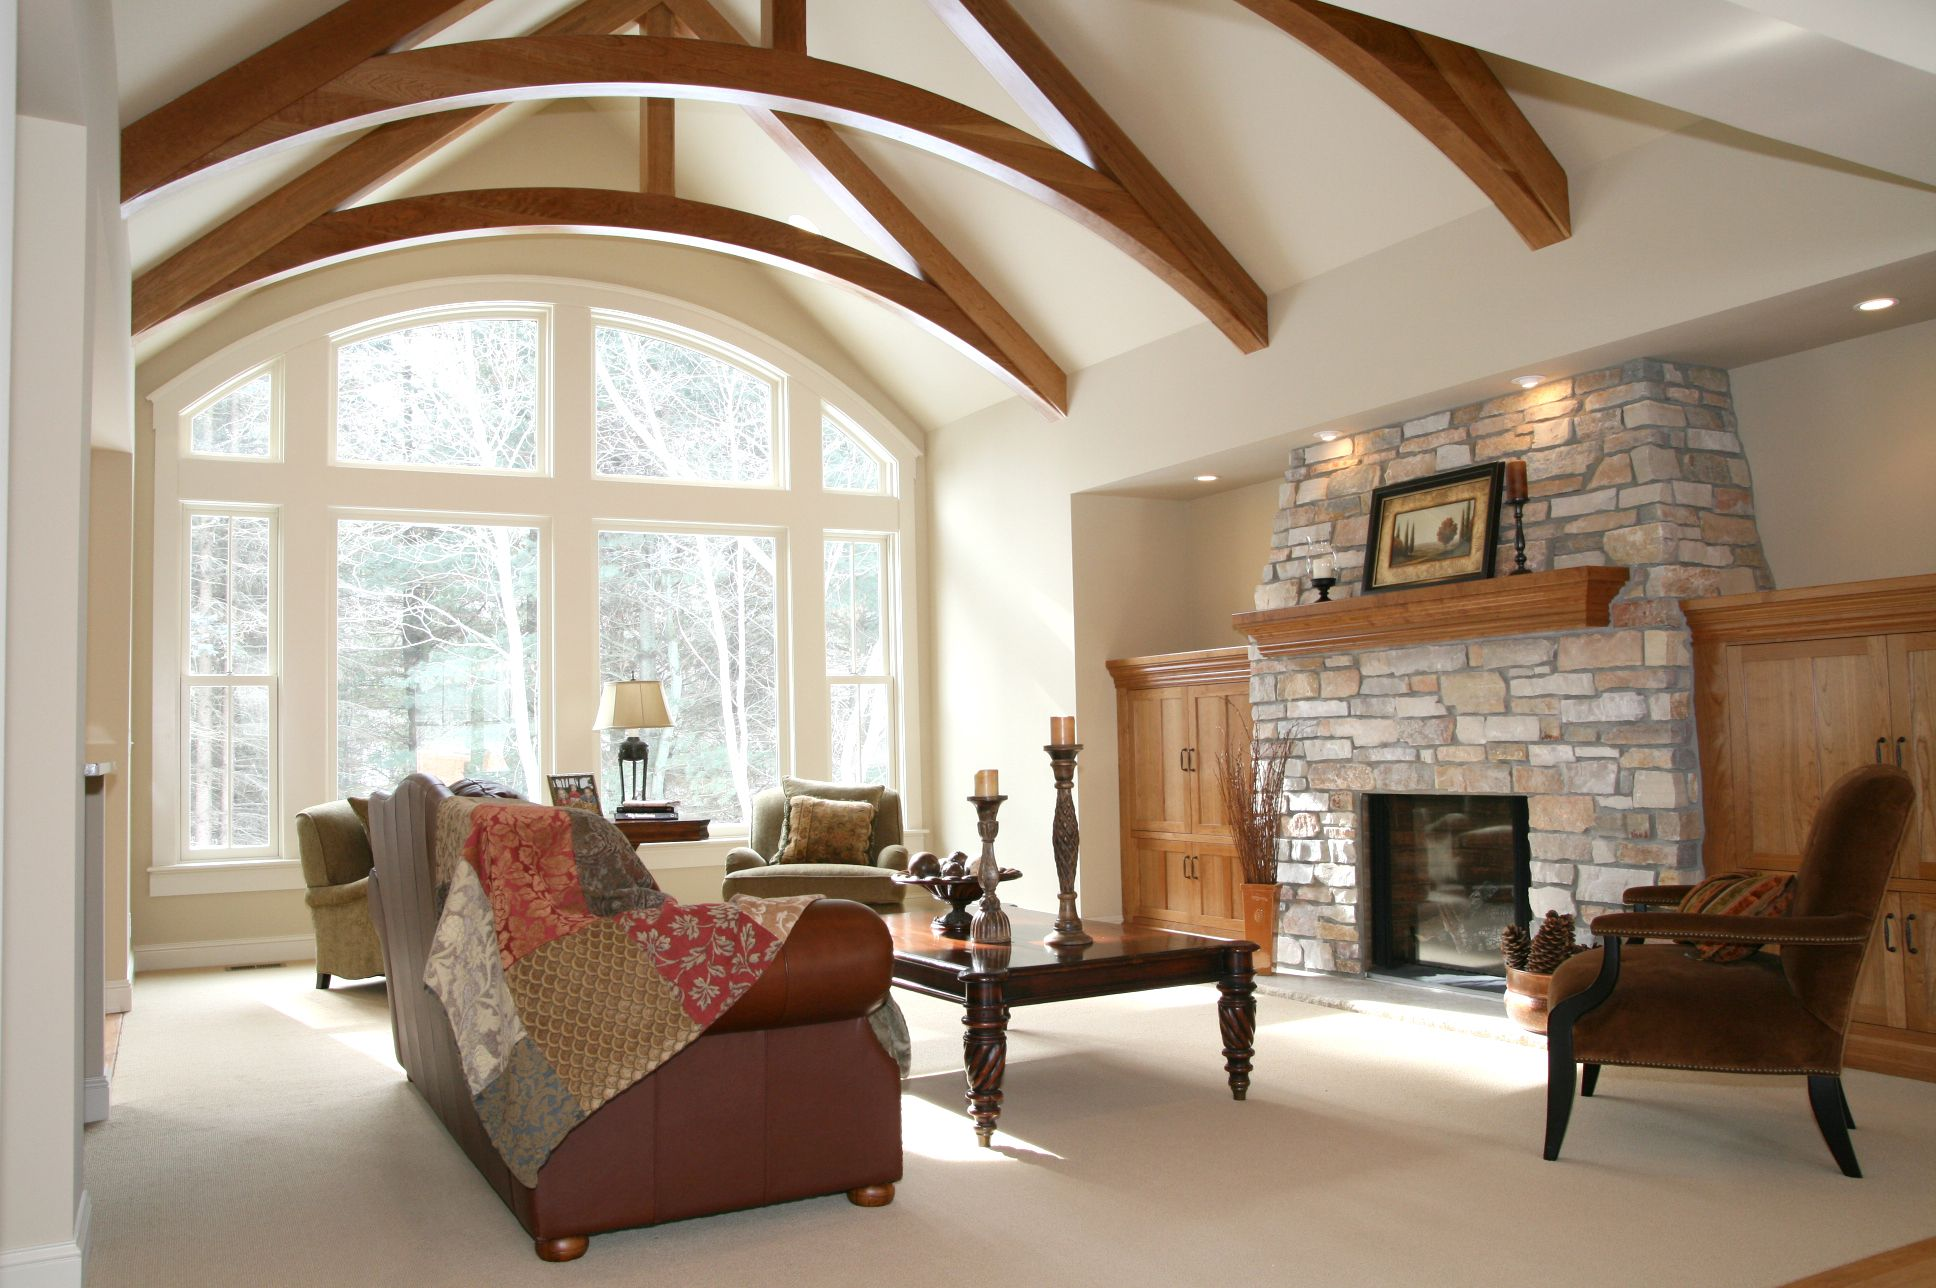 Great room with high stone fireplace great room wow for Great room fireplace